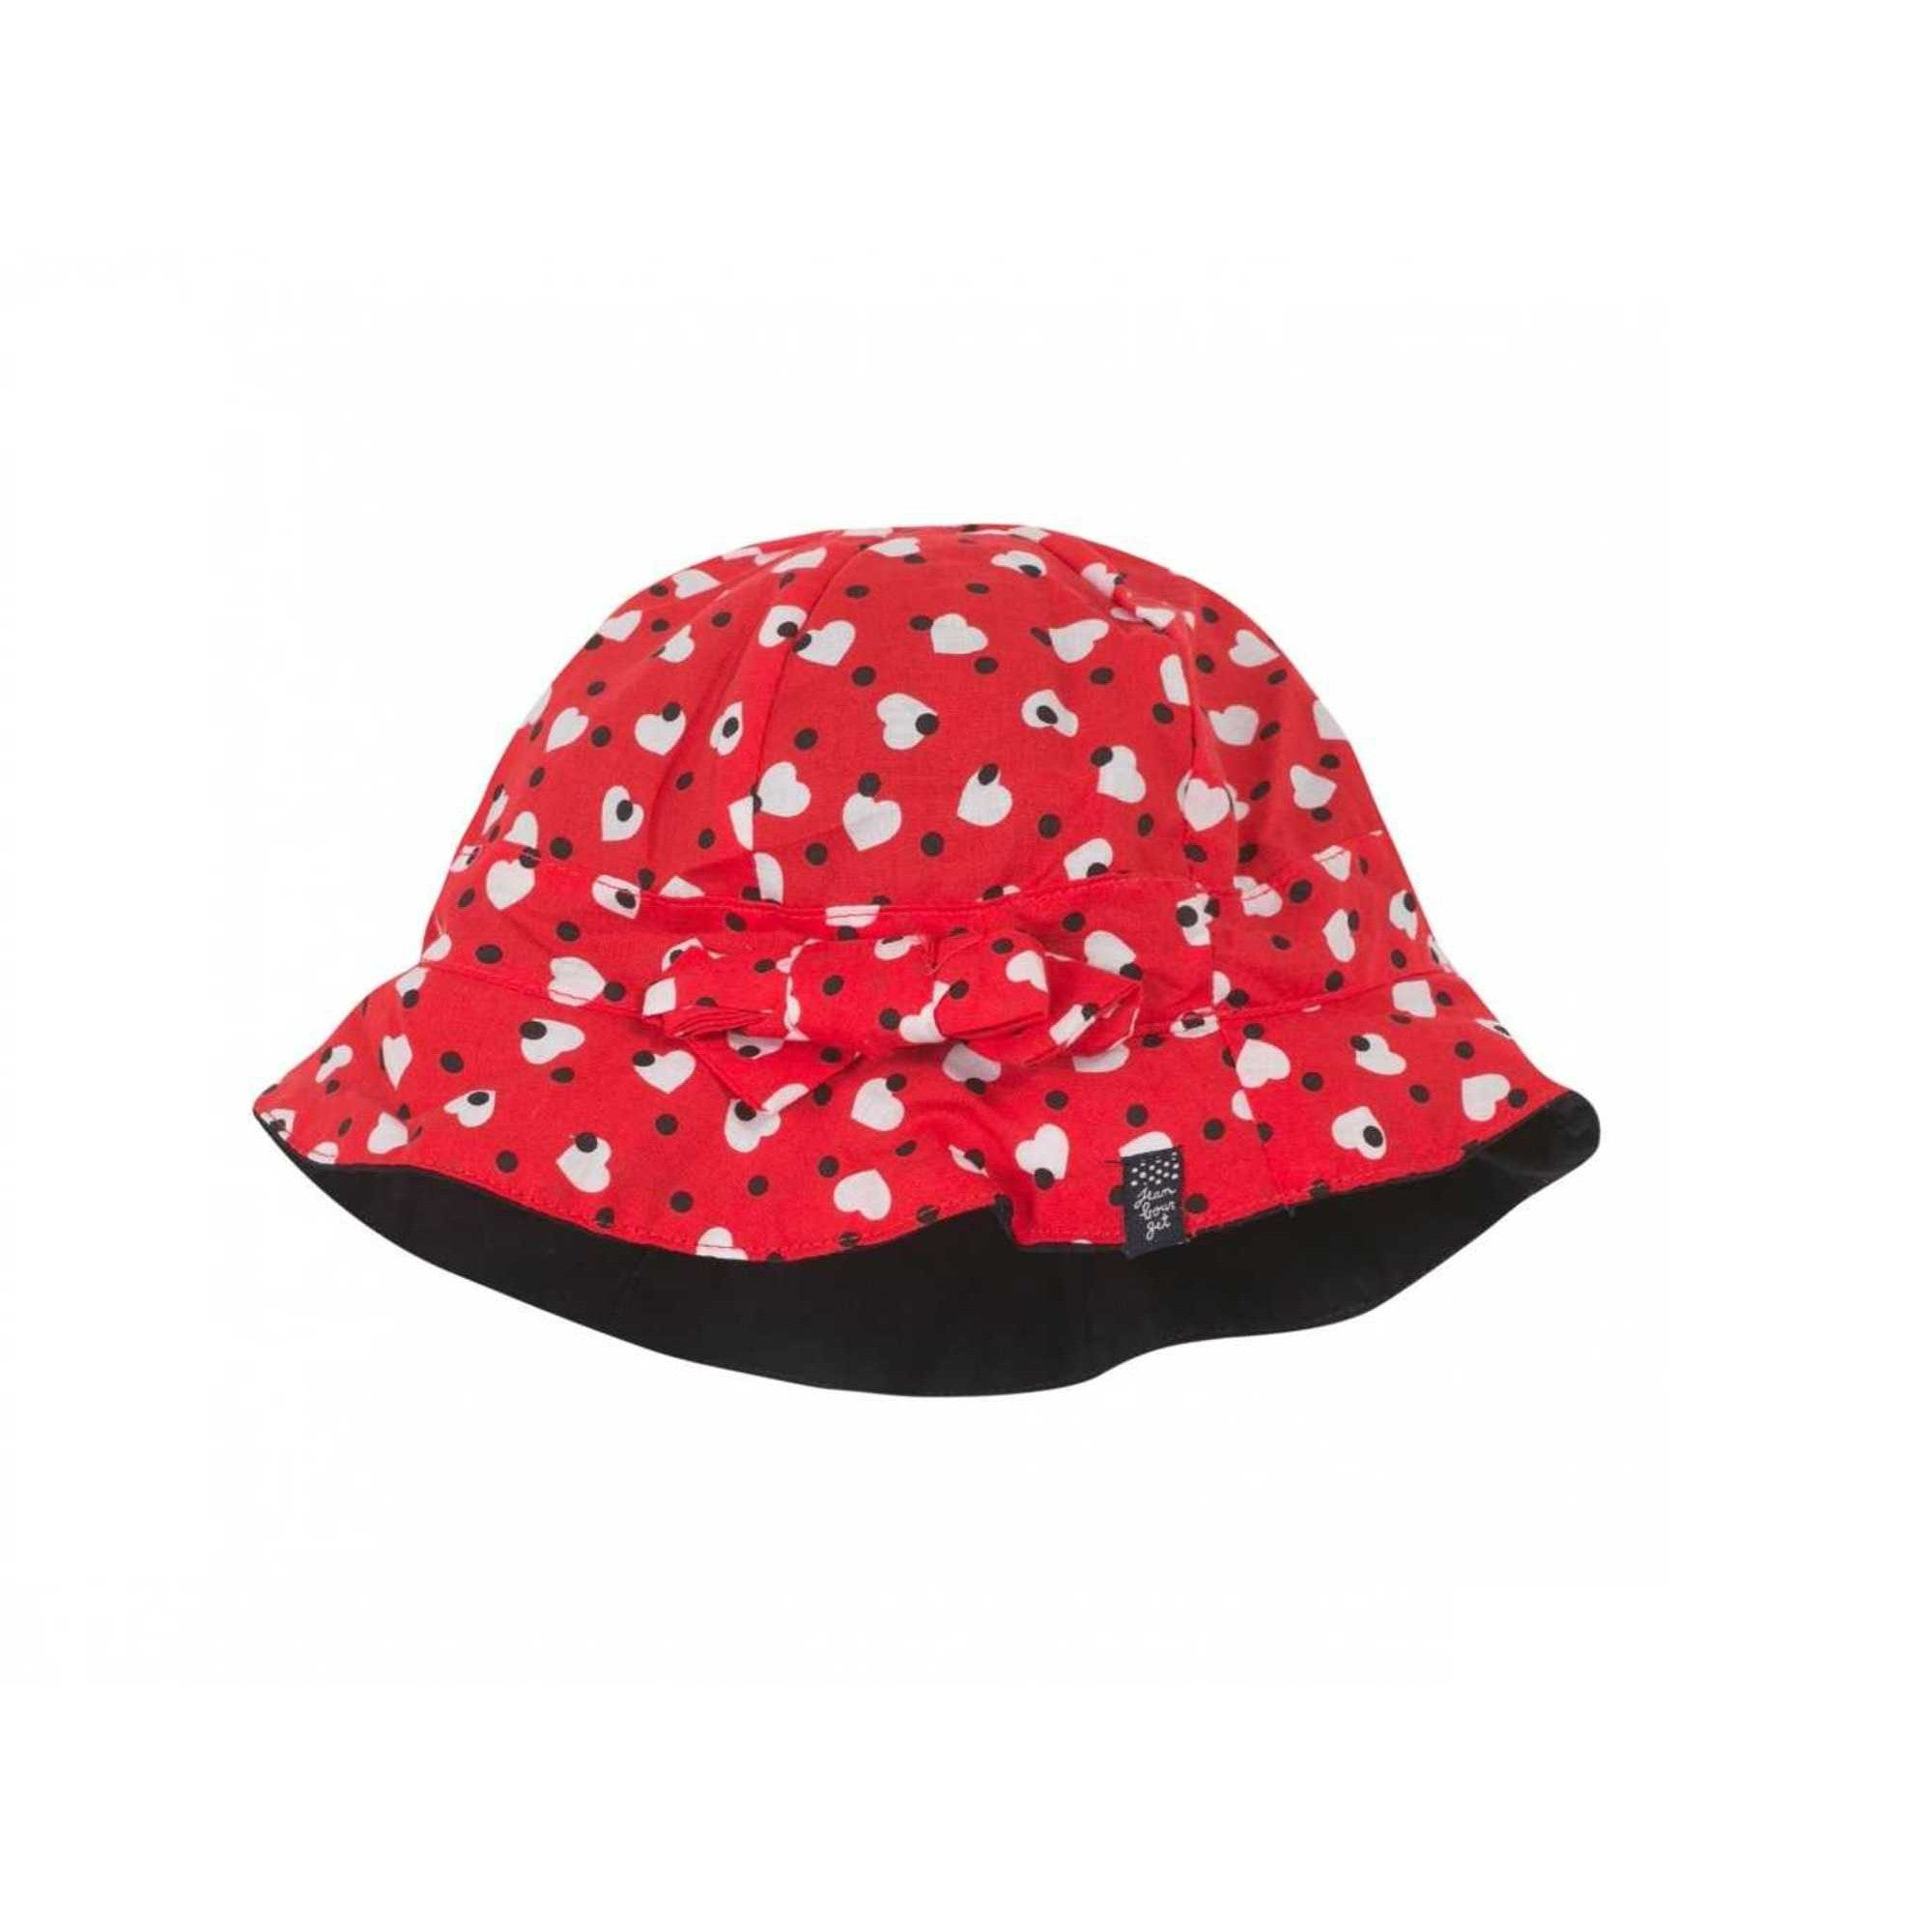 JEAN BOURGET REVERSIBLE SUN HAT JH90021A